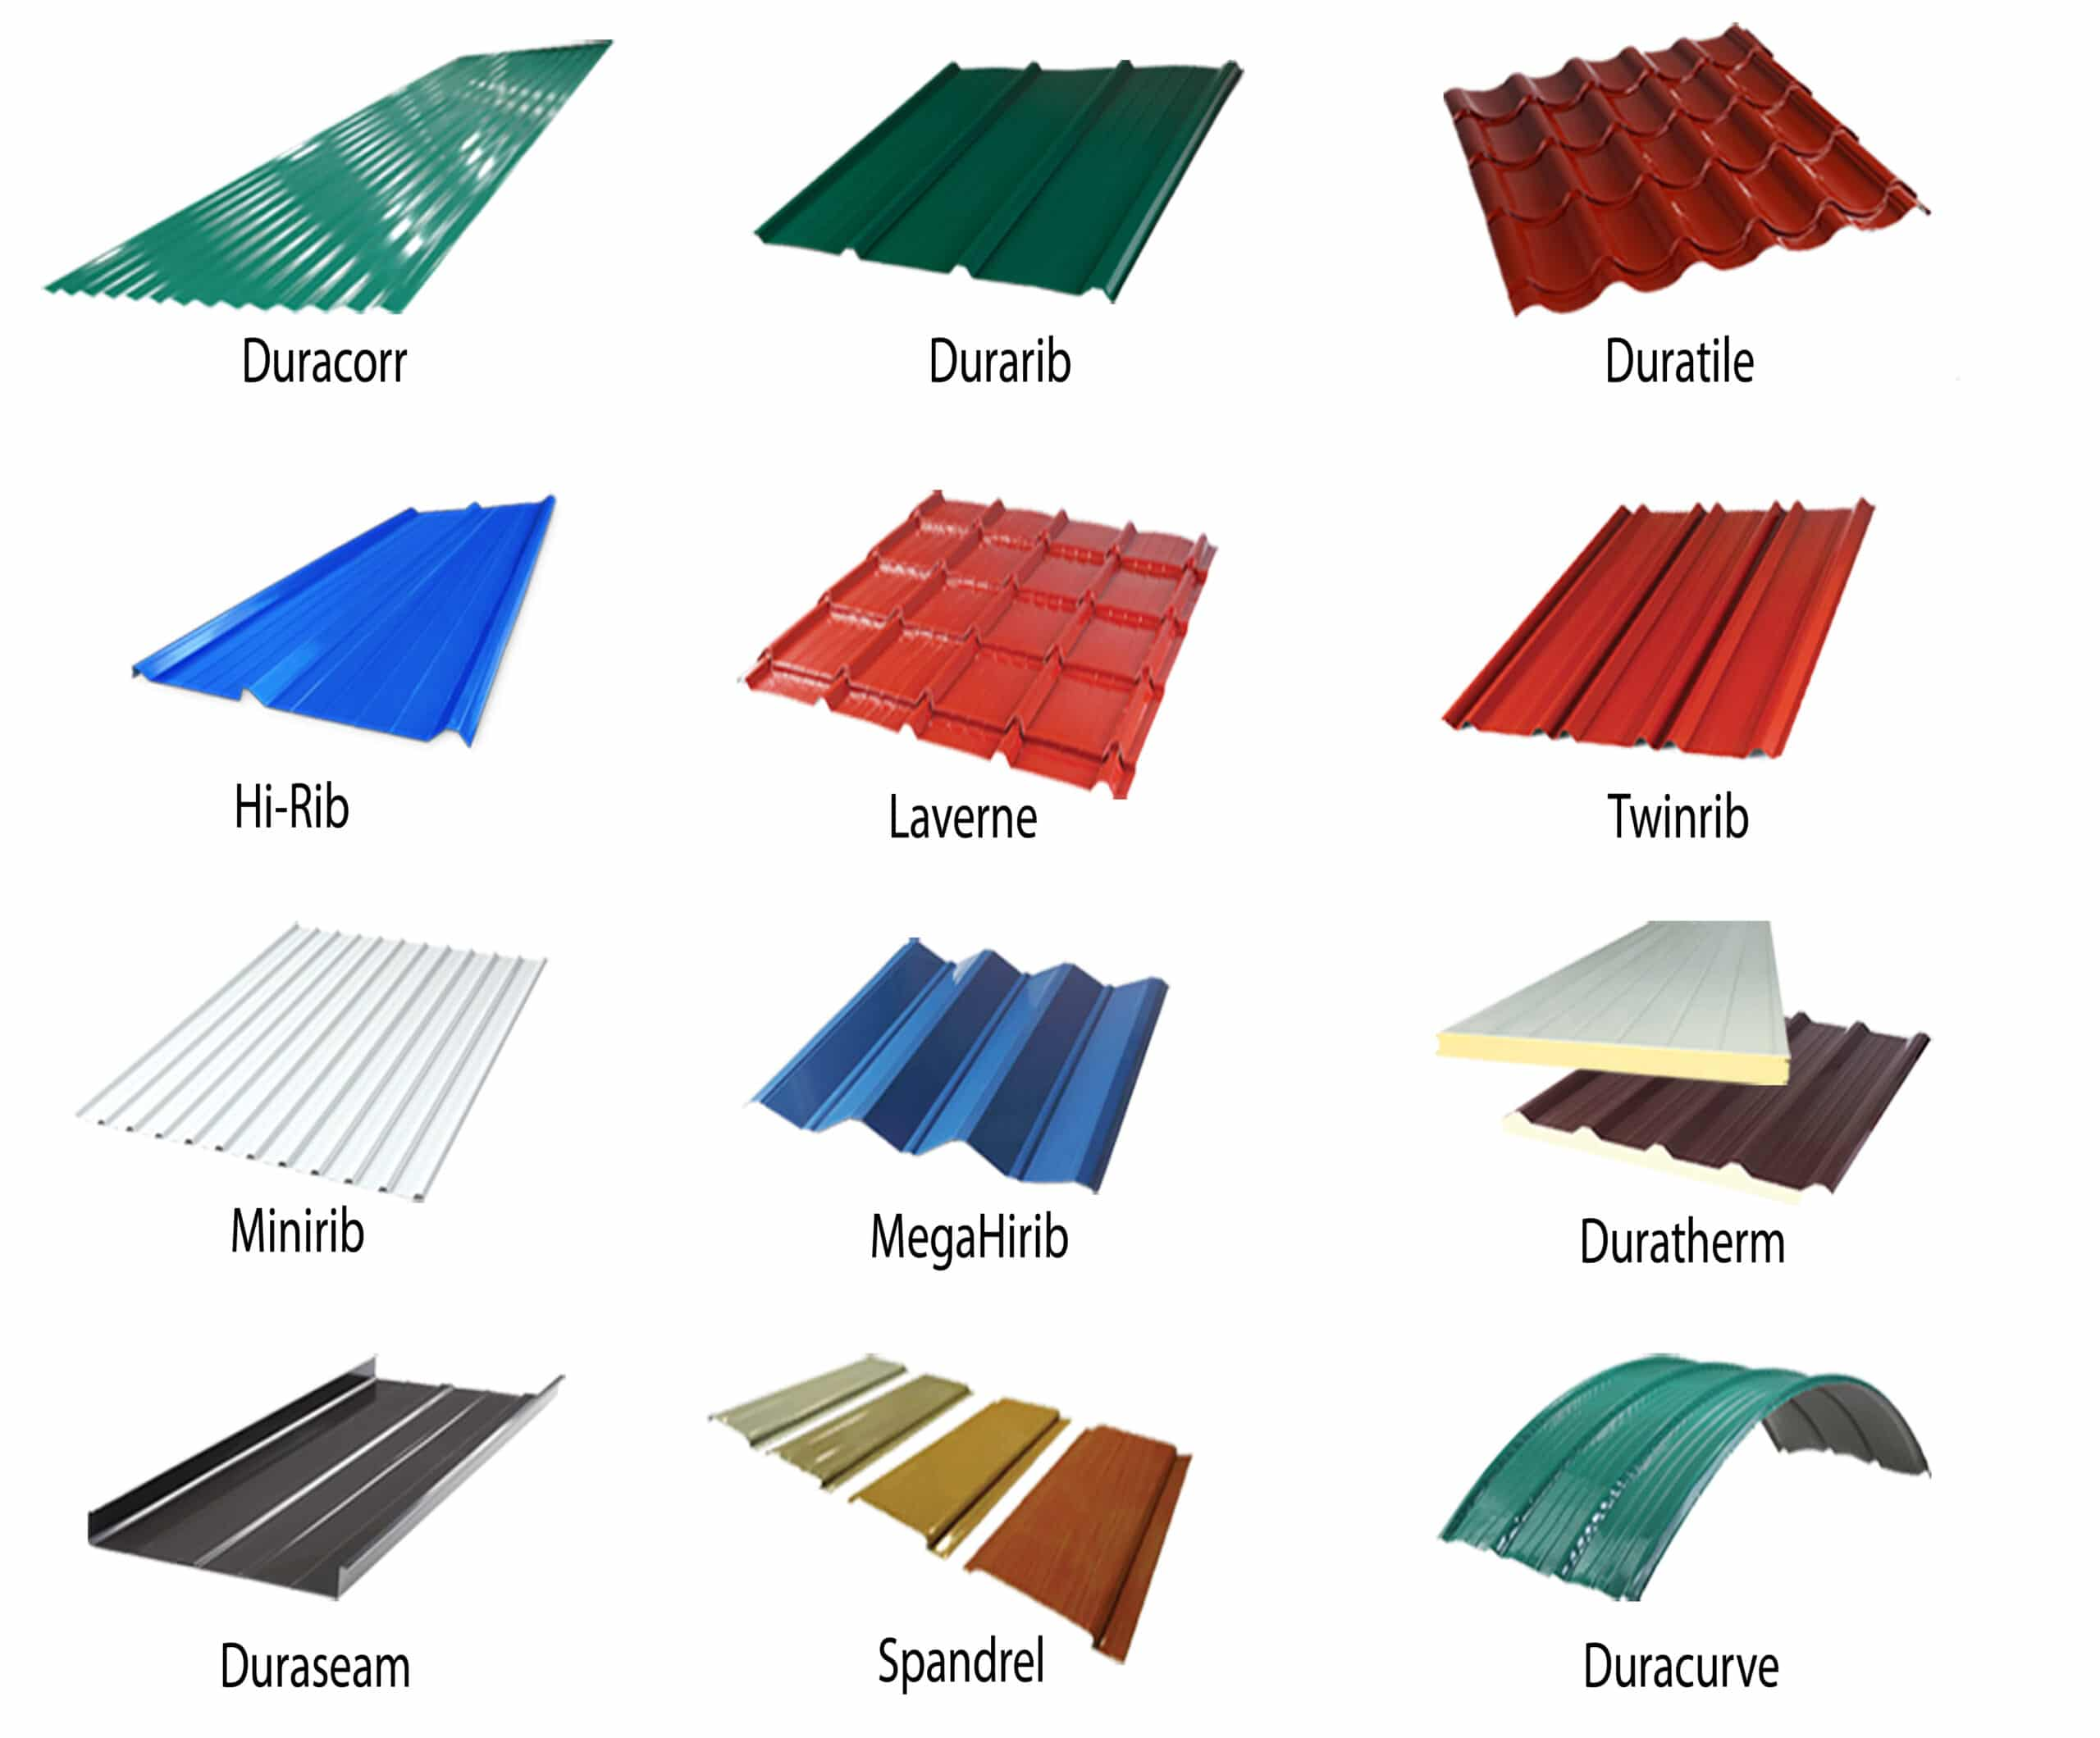 How to Paint Galvanized Steel Roofing Properly